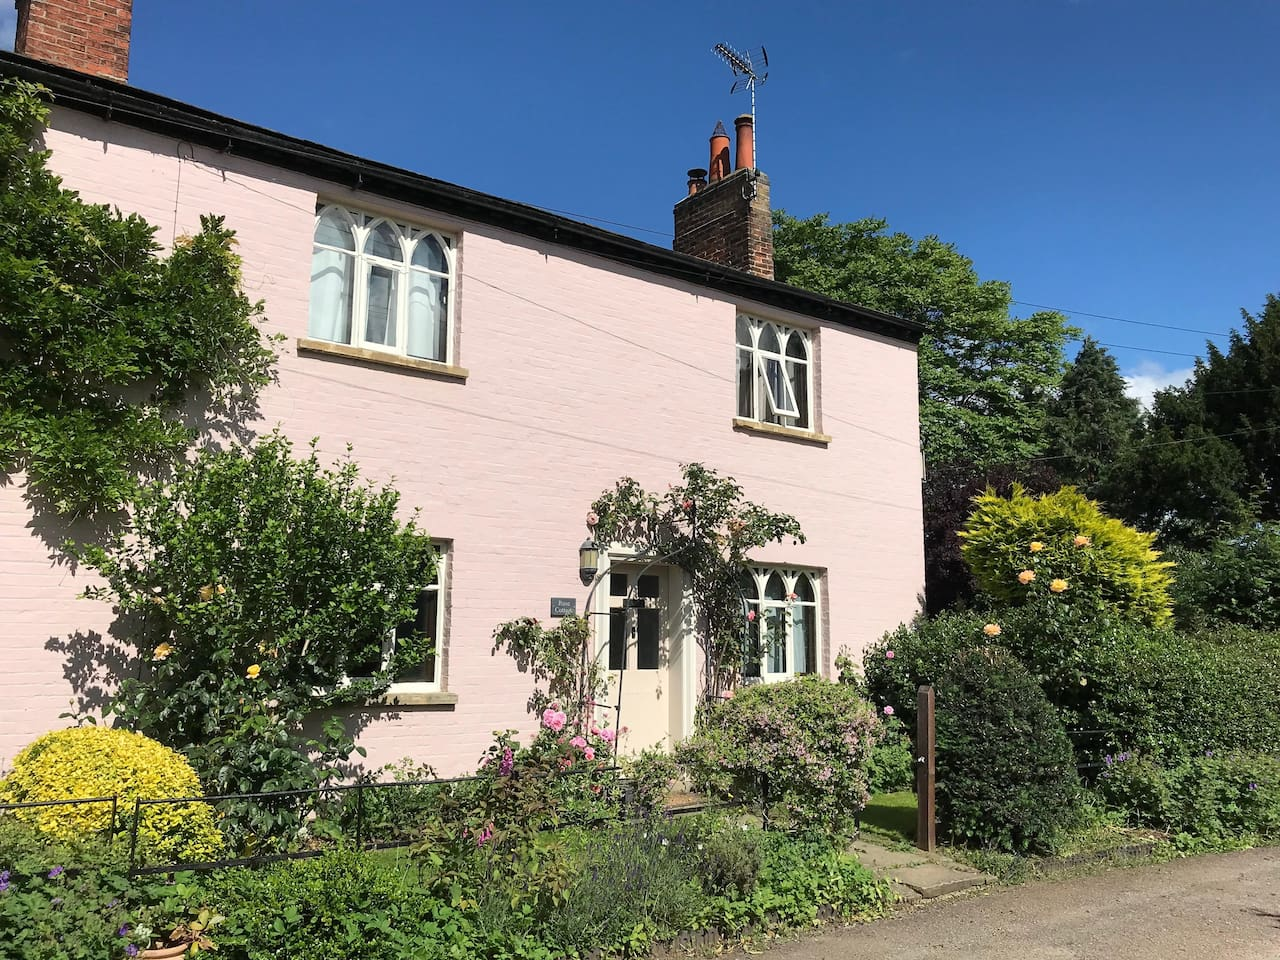 Rose Cottage is a delightful semi-detached period cottage on a quiet lane and is well situated for walks by the river.  It has a private walled courtyard garden to the rear and has Smart TV and high-speed broadband.  All amenities close  by.